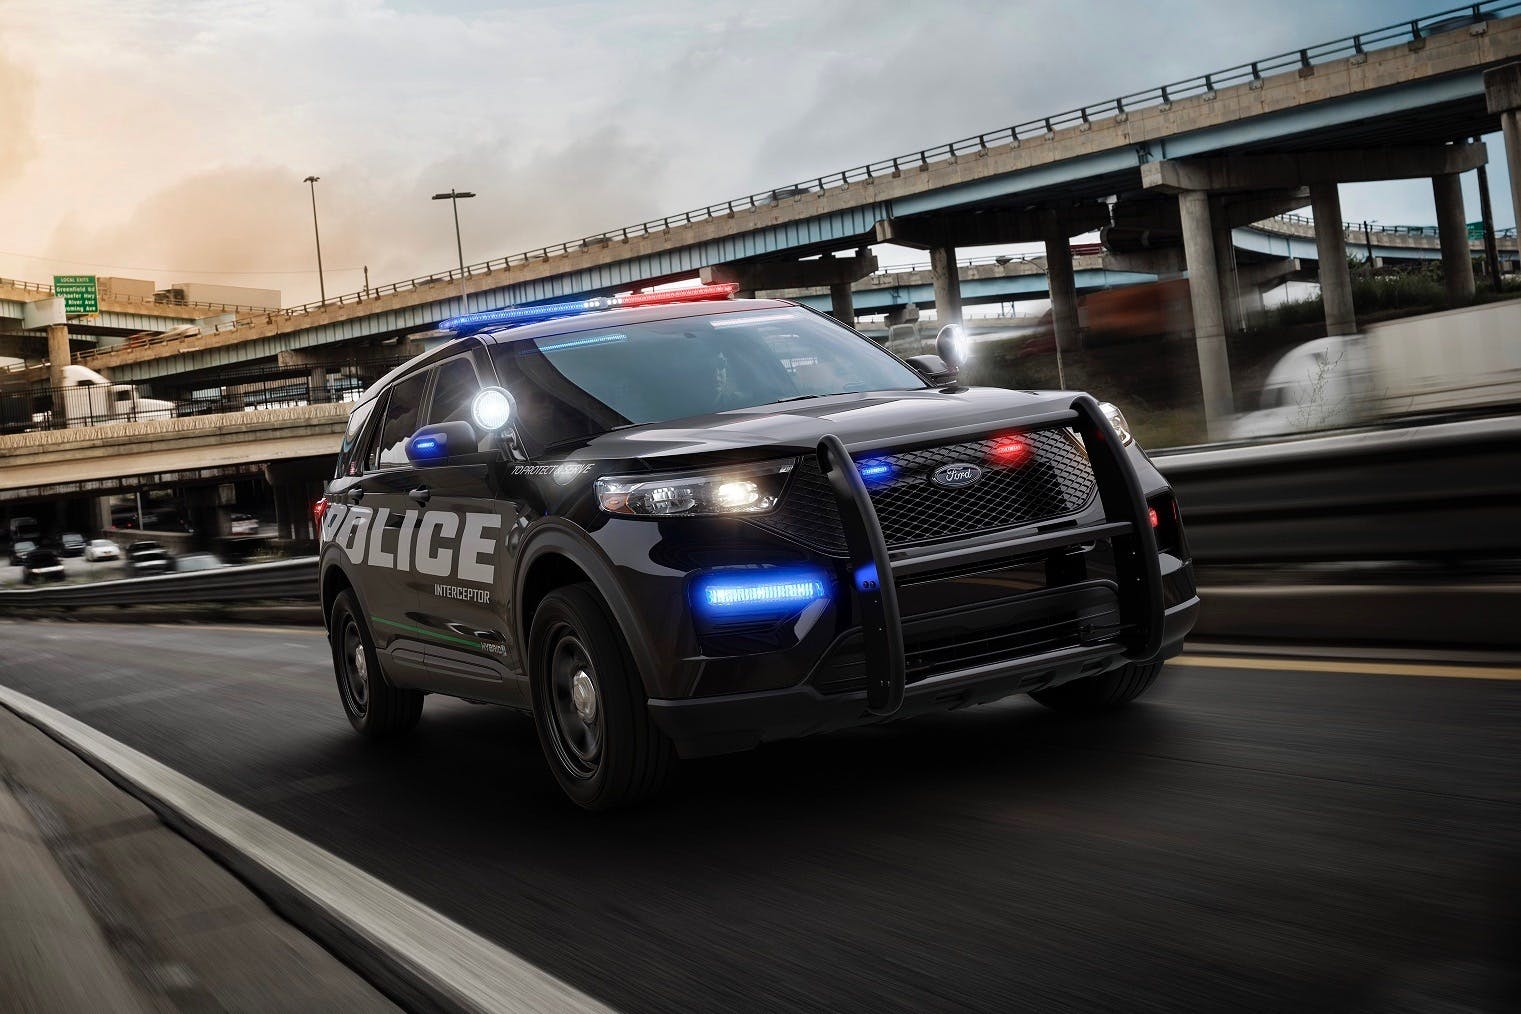 Are Police Cars Faster than Normal Cars?